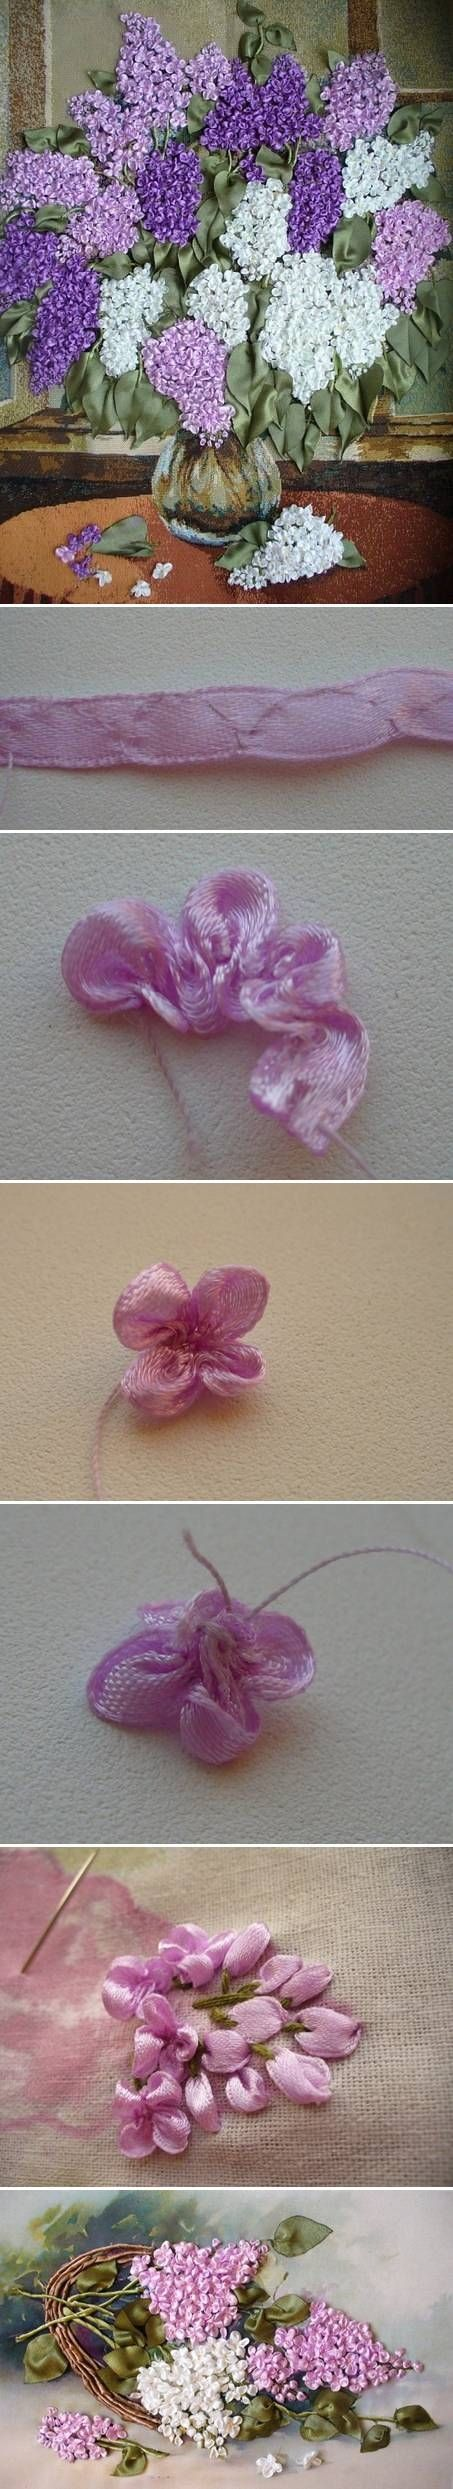 Diy Fabric Lilac Flowers Too Cool They Look So Real Flores De